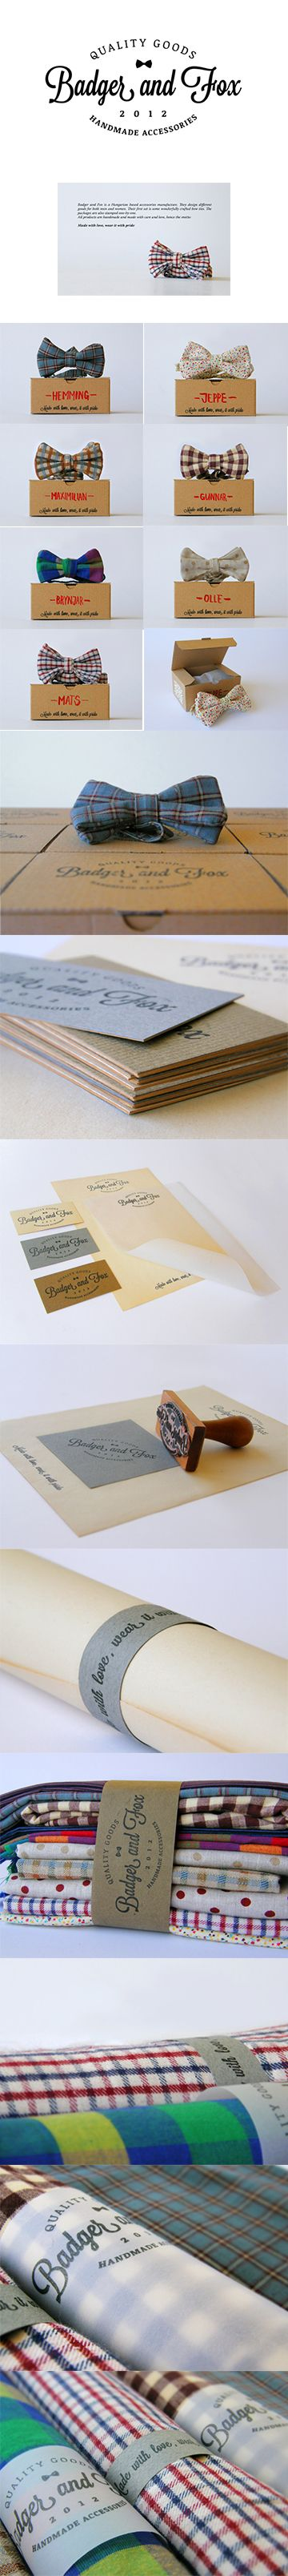 Packaging & Presentation #creativemarketing #badgerandfox #bowties